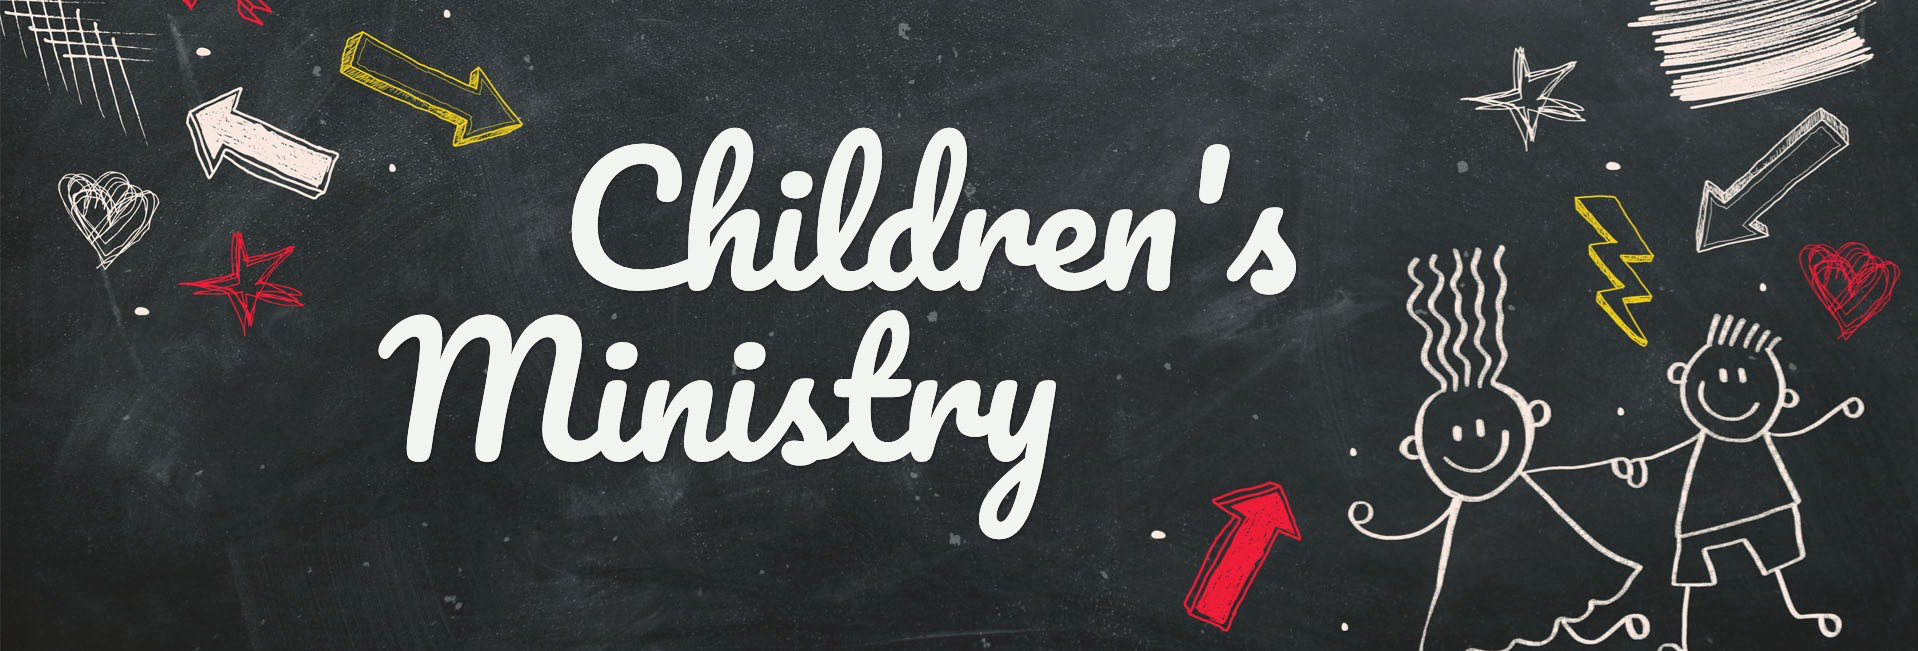 Back To School Chalkboard Art Church Website Graphic